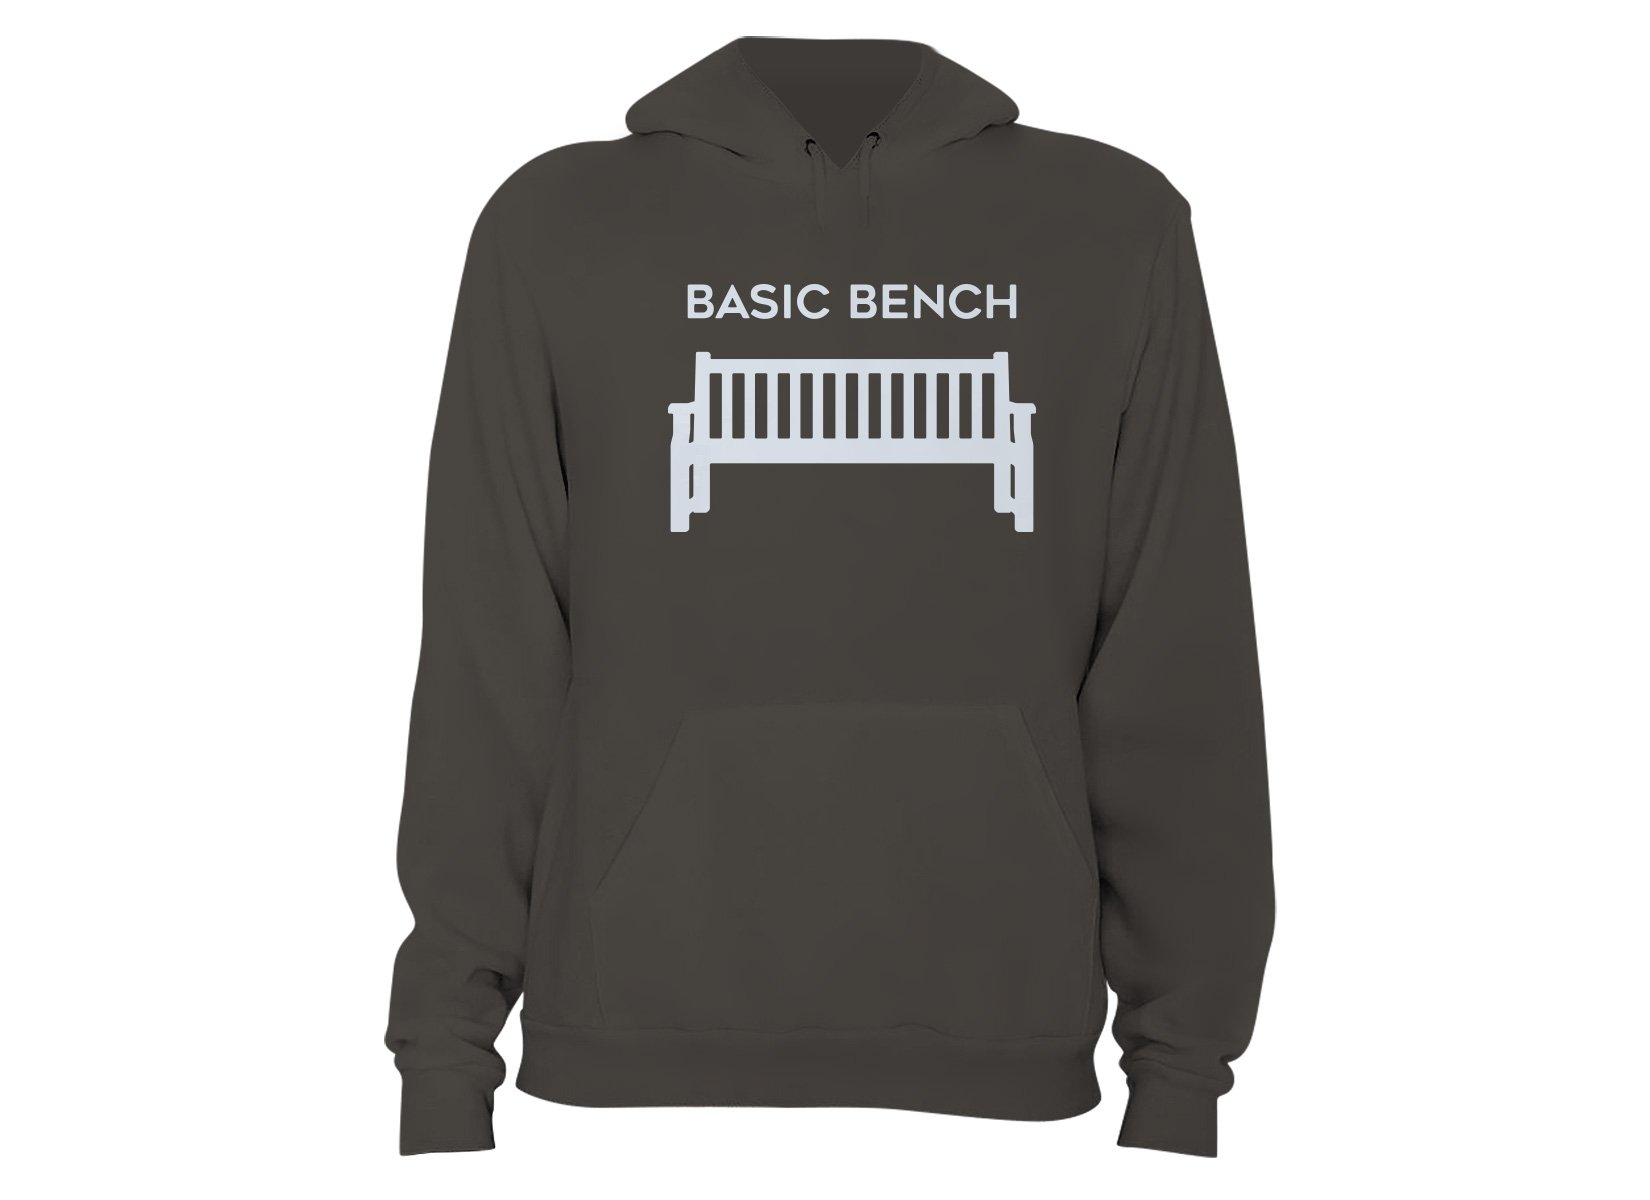 Basic Bench on Hoodie